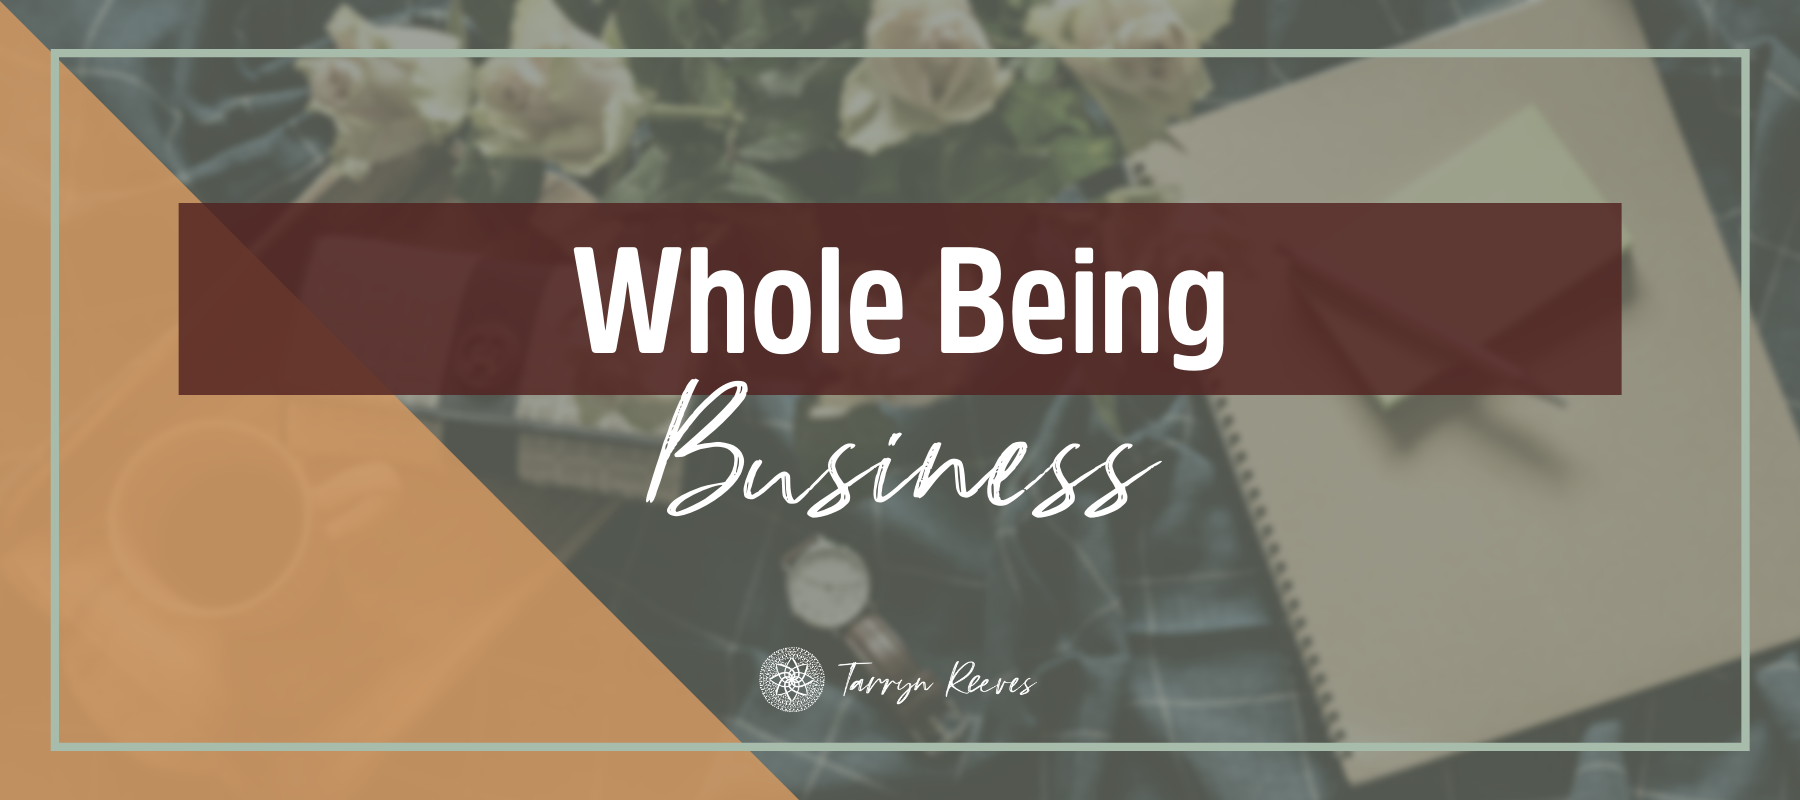 What Does It Mean To Use Your Whole Being In Business?